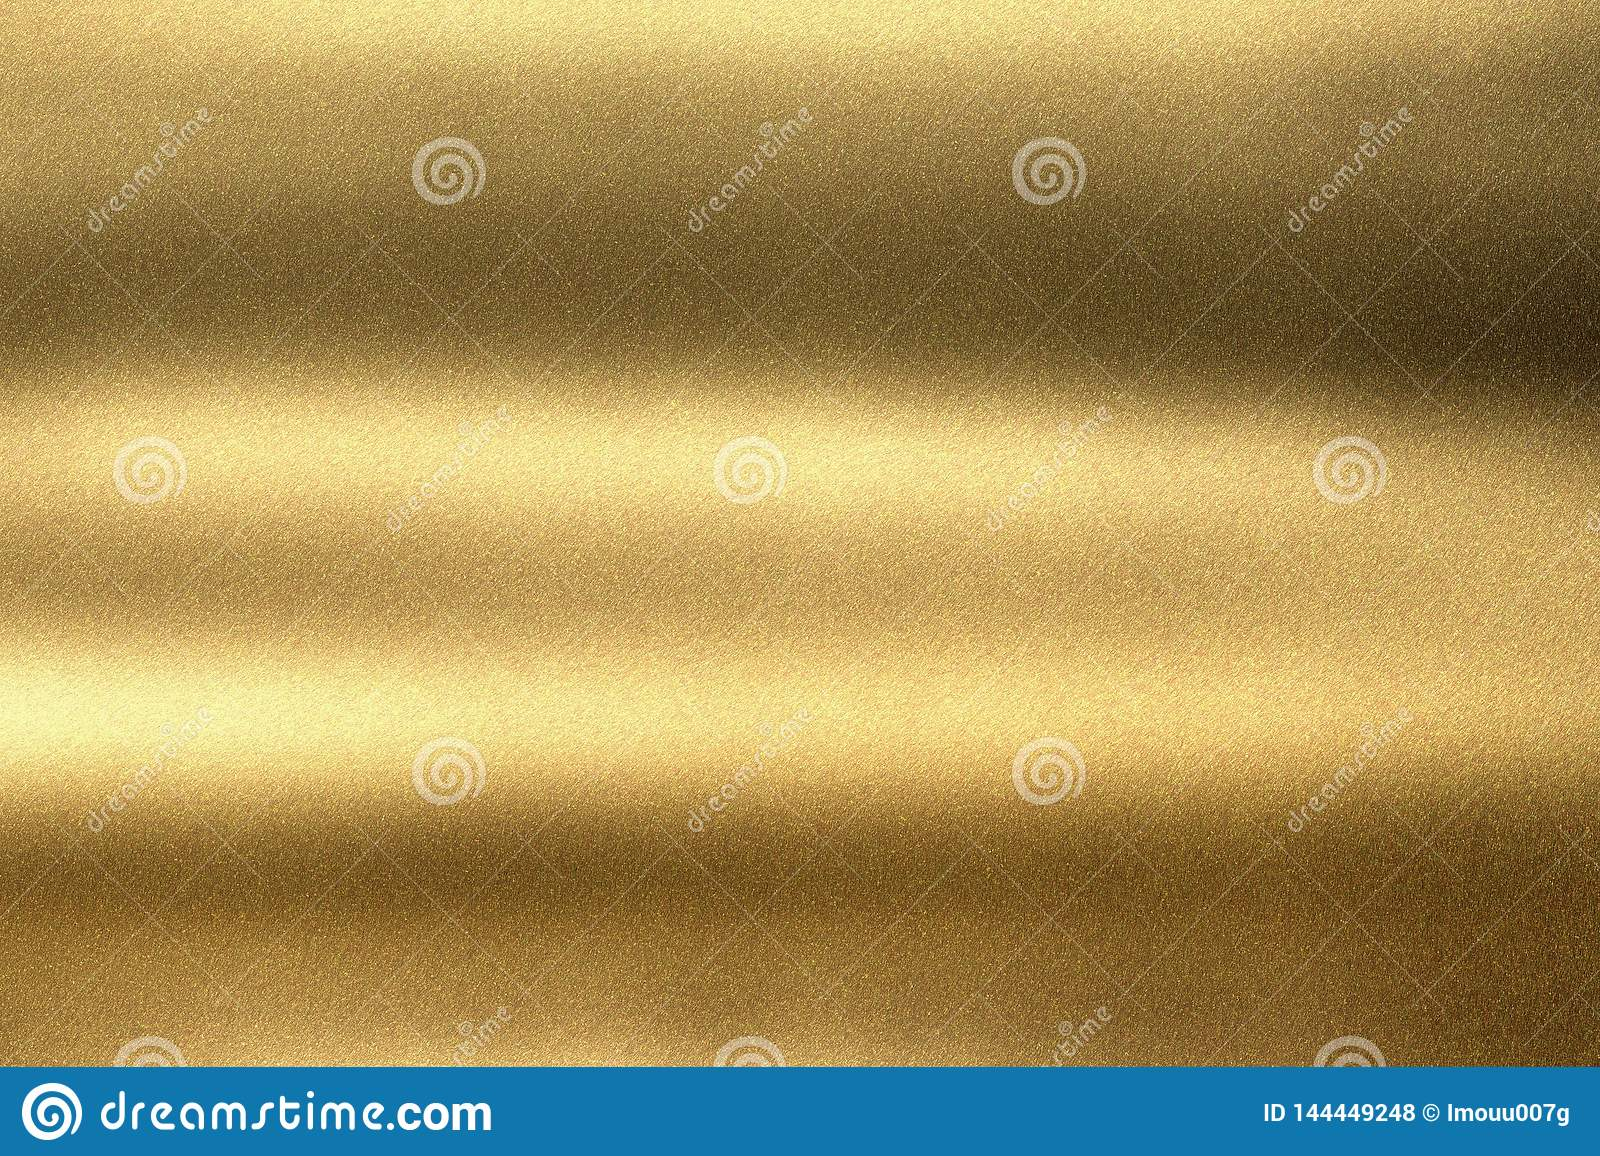 Abstract texture background, light shining on gold corrugated metal